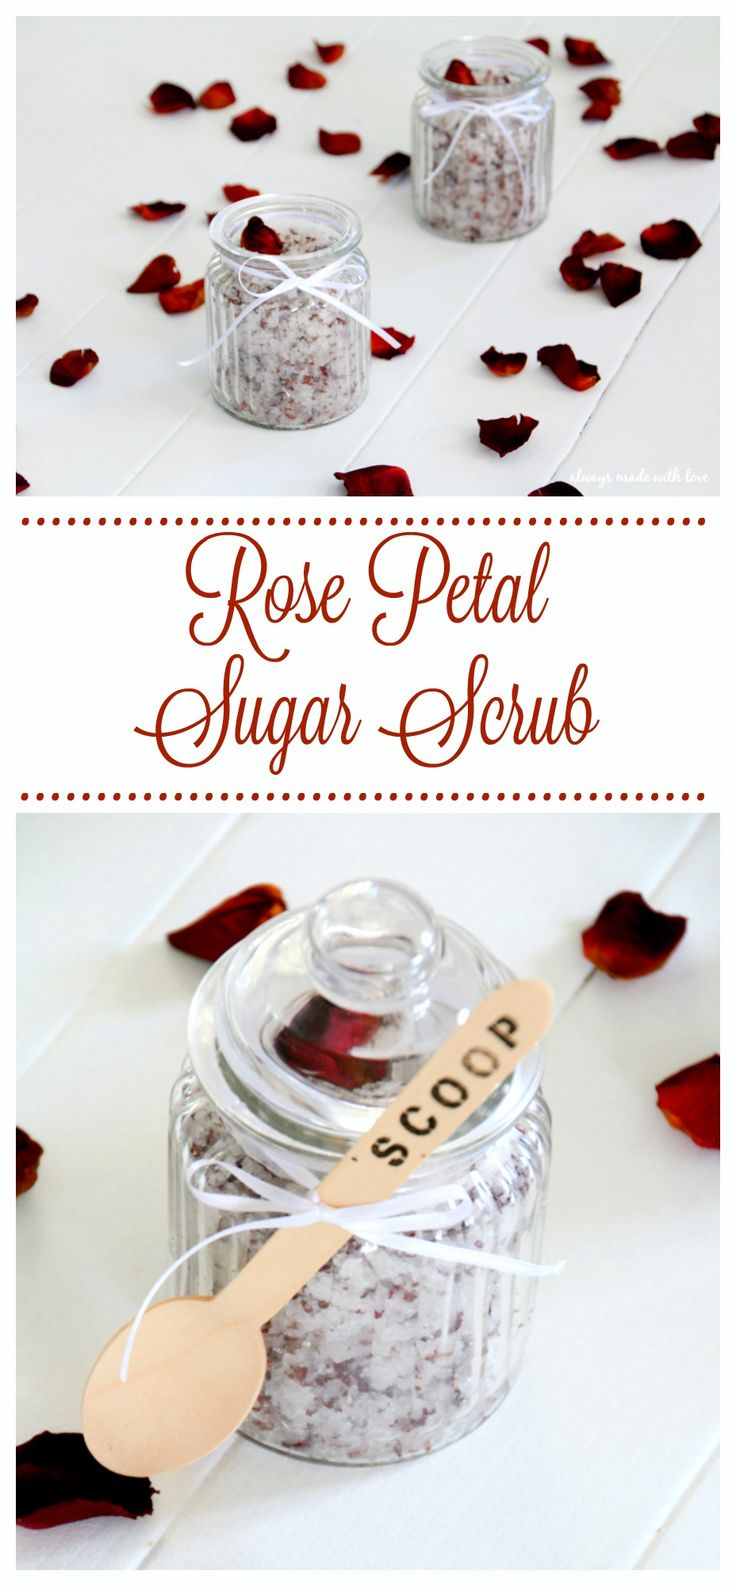 A lovely yet simple homemade sugar scrub that will leave you feeling relaxed and your skin silky smooth